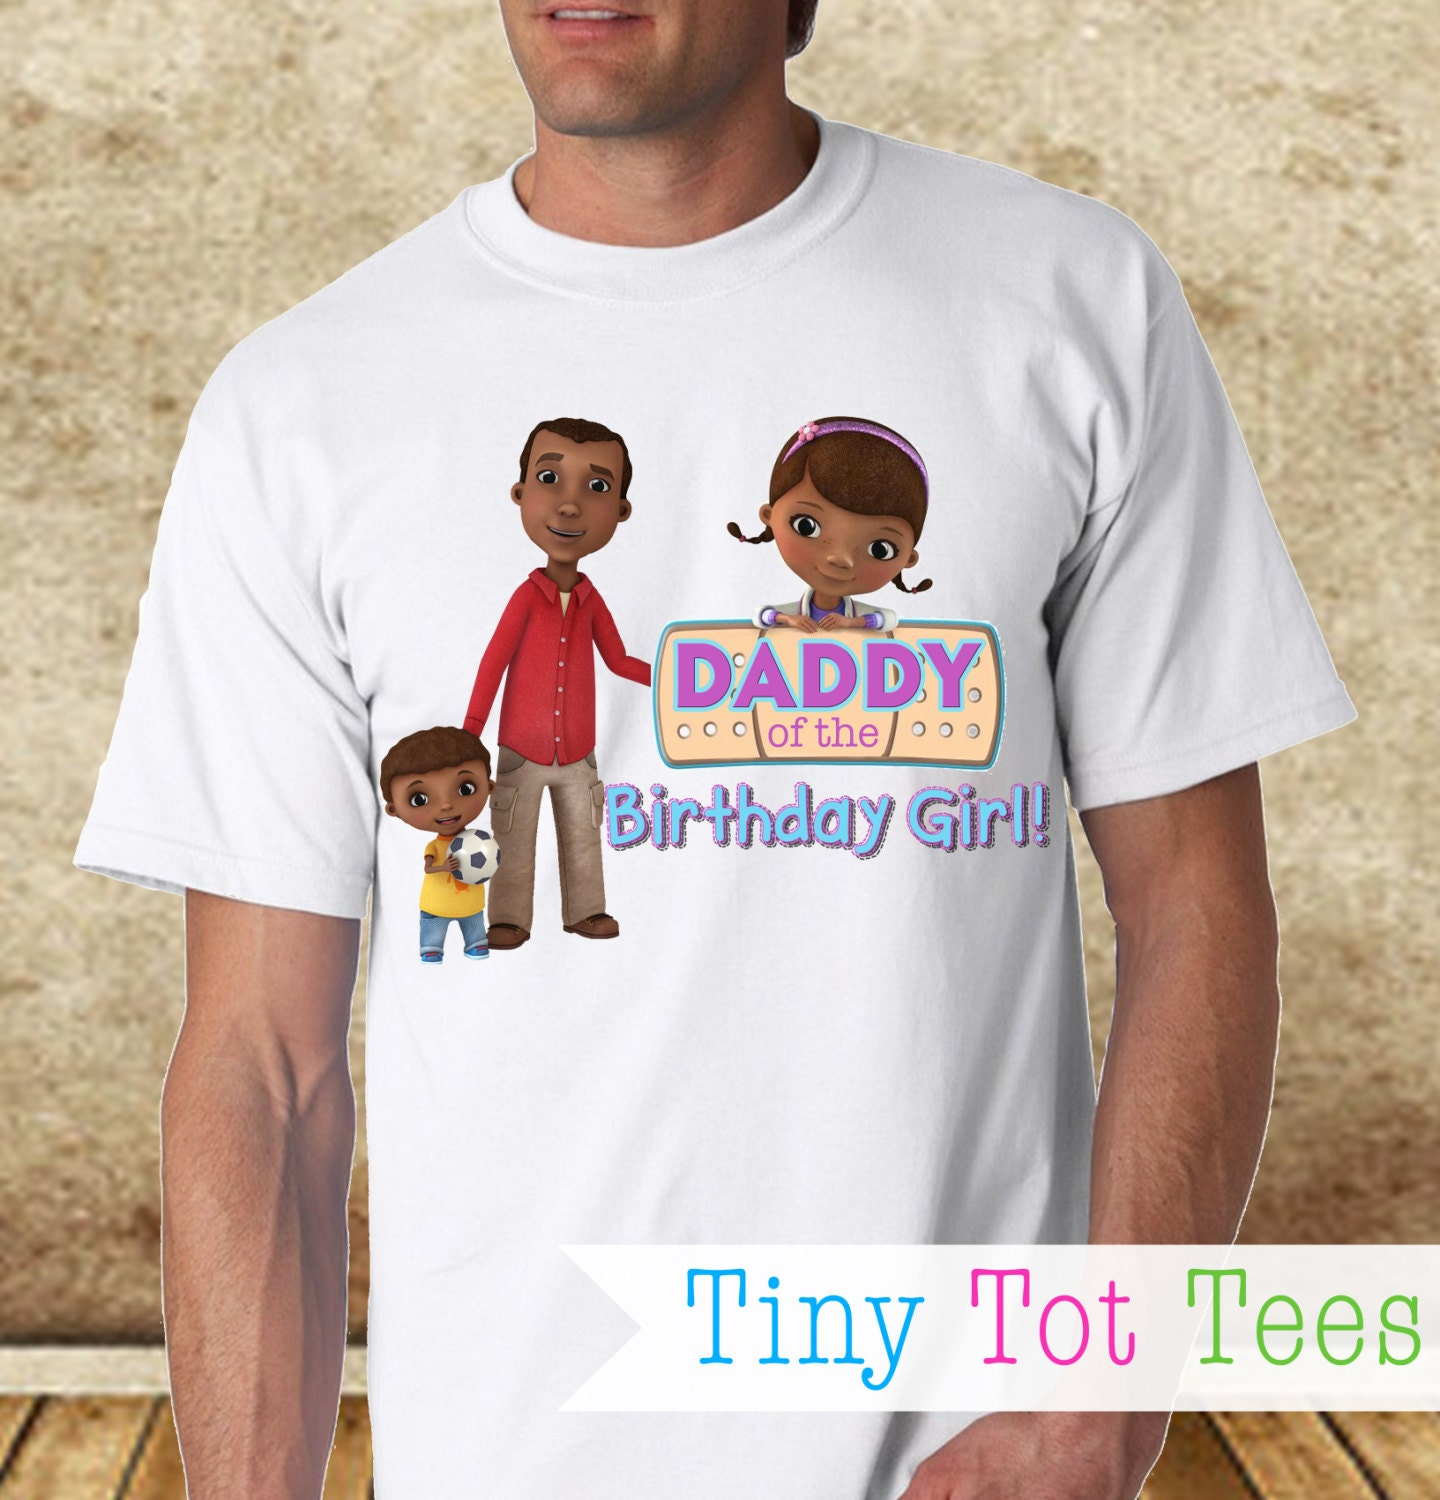 Doc mcstuffins birthday girl 39 s dad t shirt by tinytottees for Doc mcstuffins birthday girl shirt